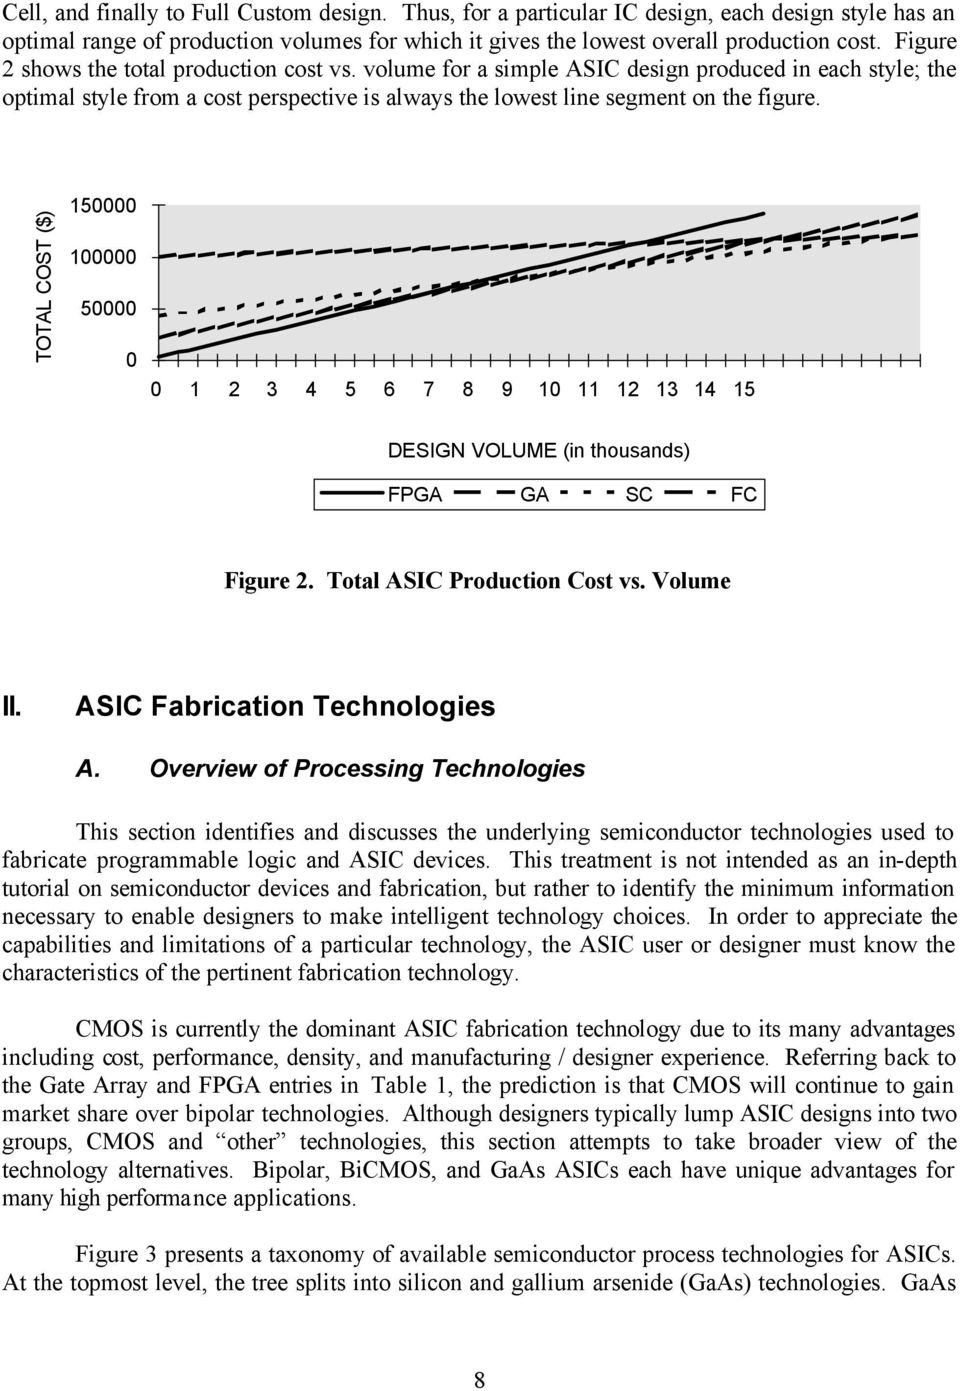 TOTAL COST ($) 150000 100000 50000 0 0 1 2 3 4 5 6 7 8 9 10 11 12 13 14 15 DESIGN VOLUME (in thousands) FPGA GA SC FC Figure 2. Total ASIC Production Cost vs. Volume II.